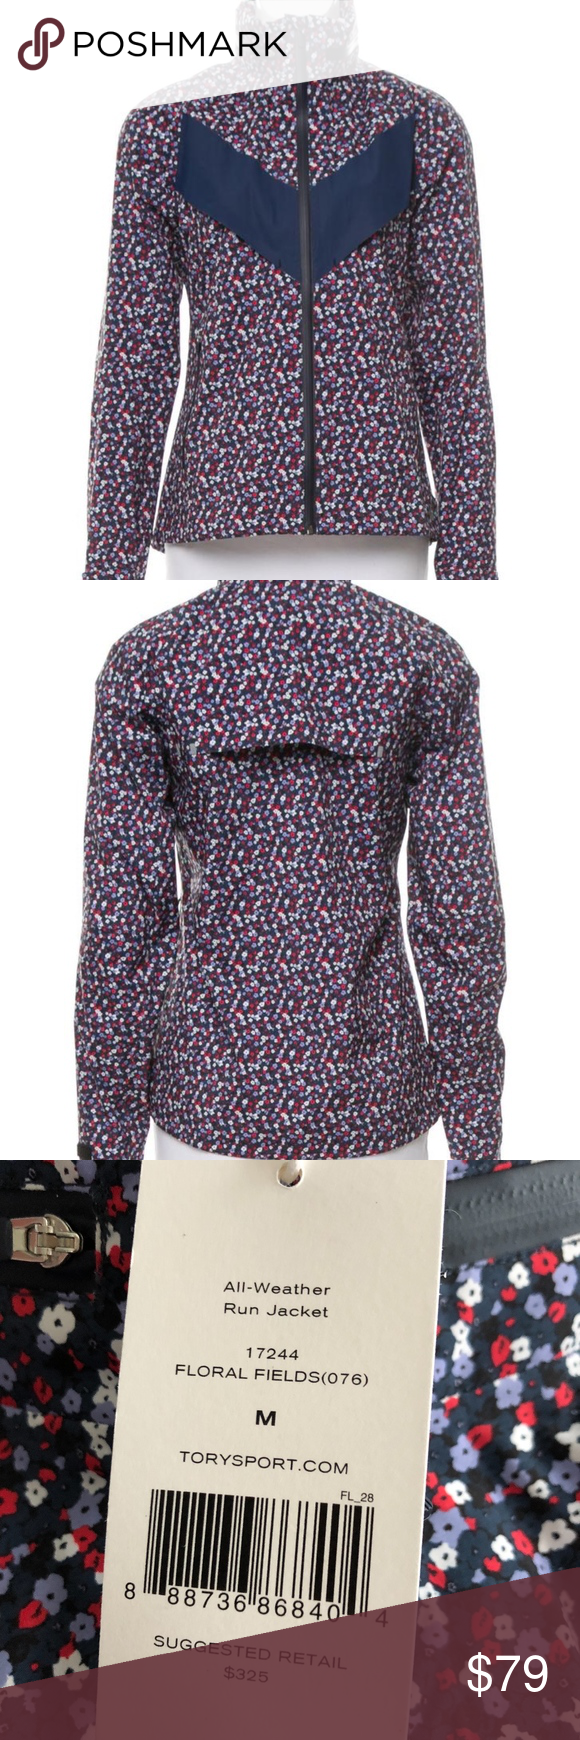 b6b462644bdb Tory Burch Blue Floral Sport Allweather Run Fields DESCRIPTION Brave the  elements in our All-Weather Run Jacket. The storm shell uses multi-layer  fusion ...